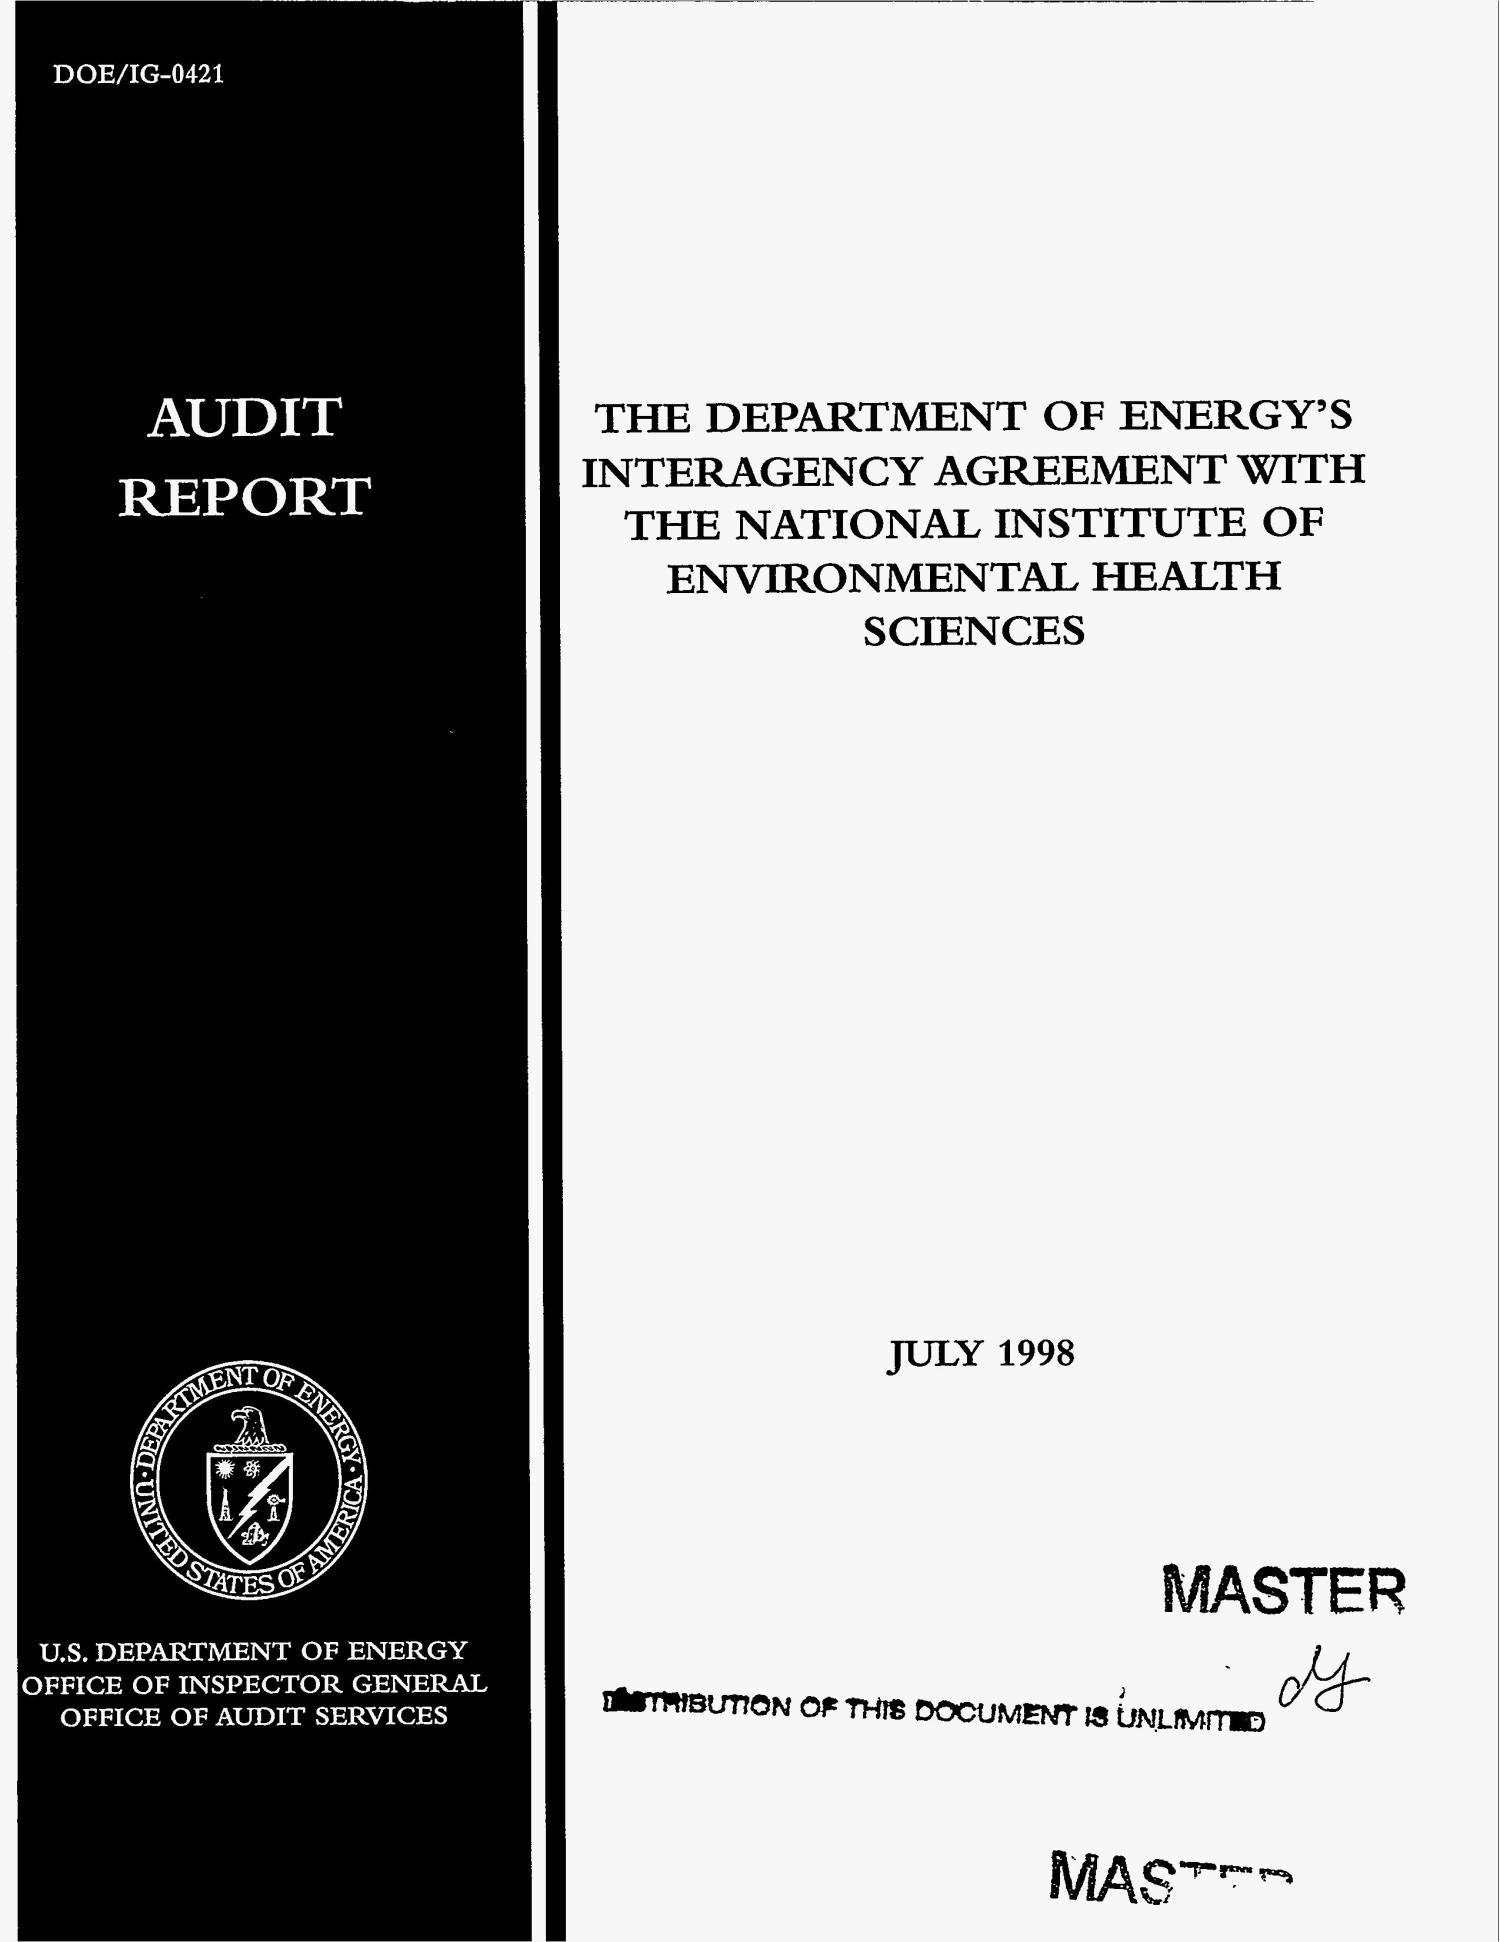 The Department of Energy`s interagency agreement with the National Institute of Environmental Health Sciences: Audit report                                                                                                      [Sequence #]: 1 of 14